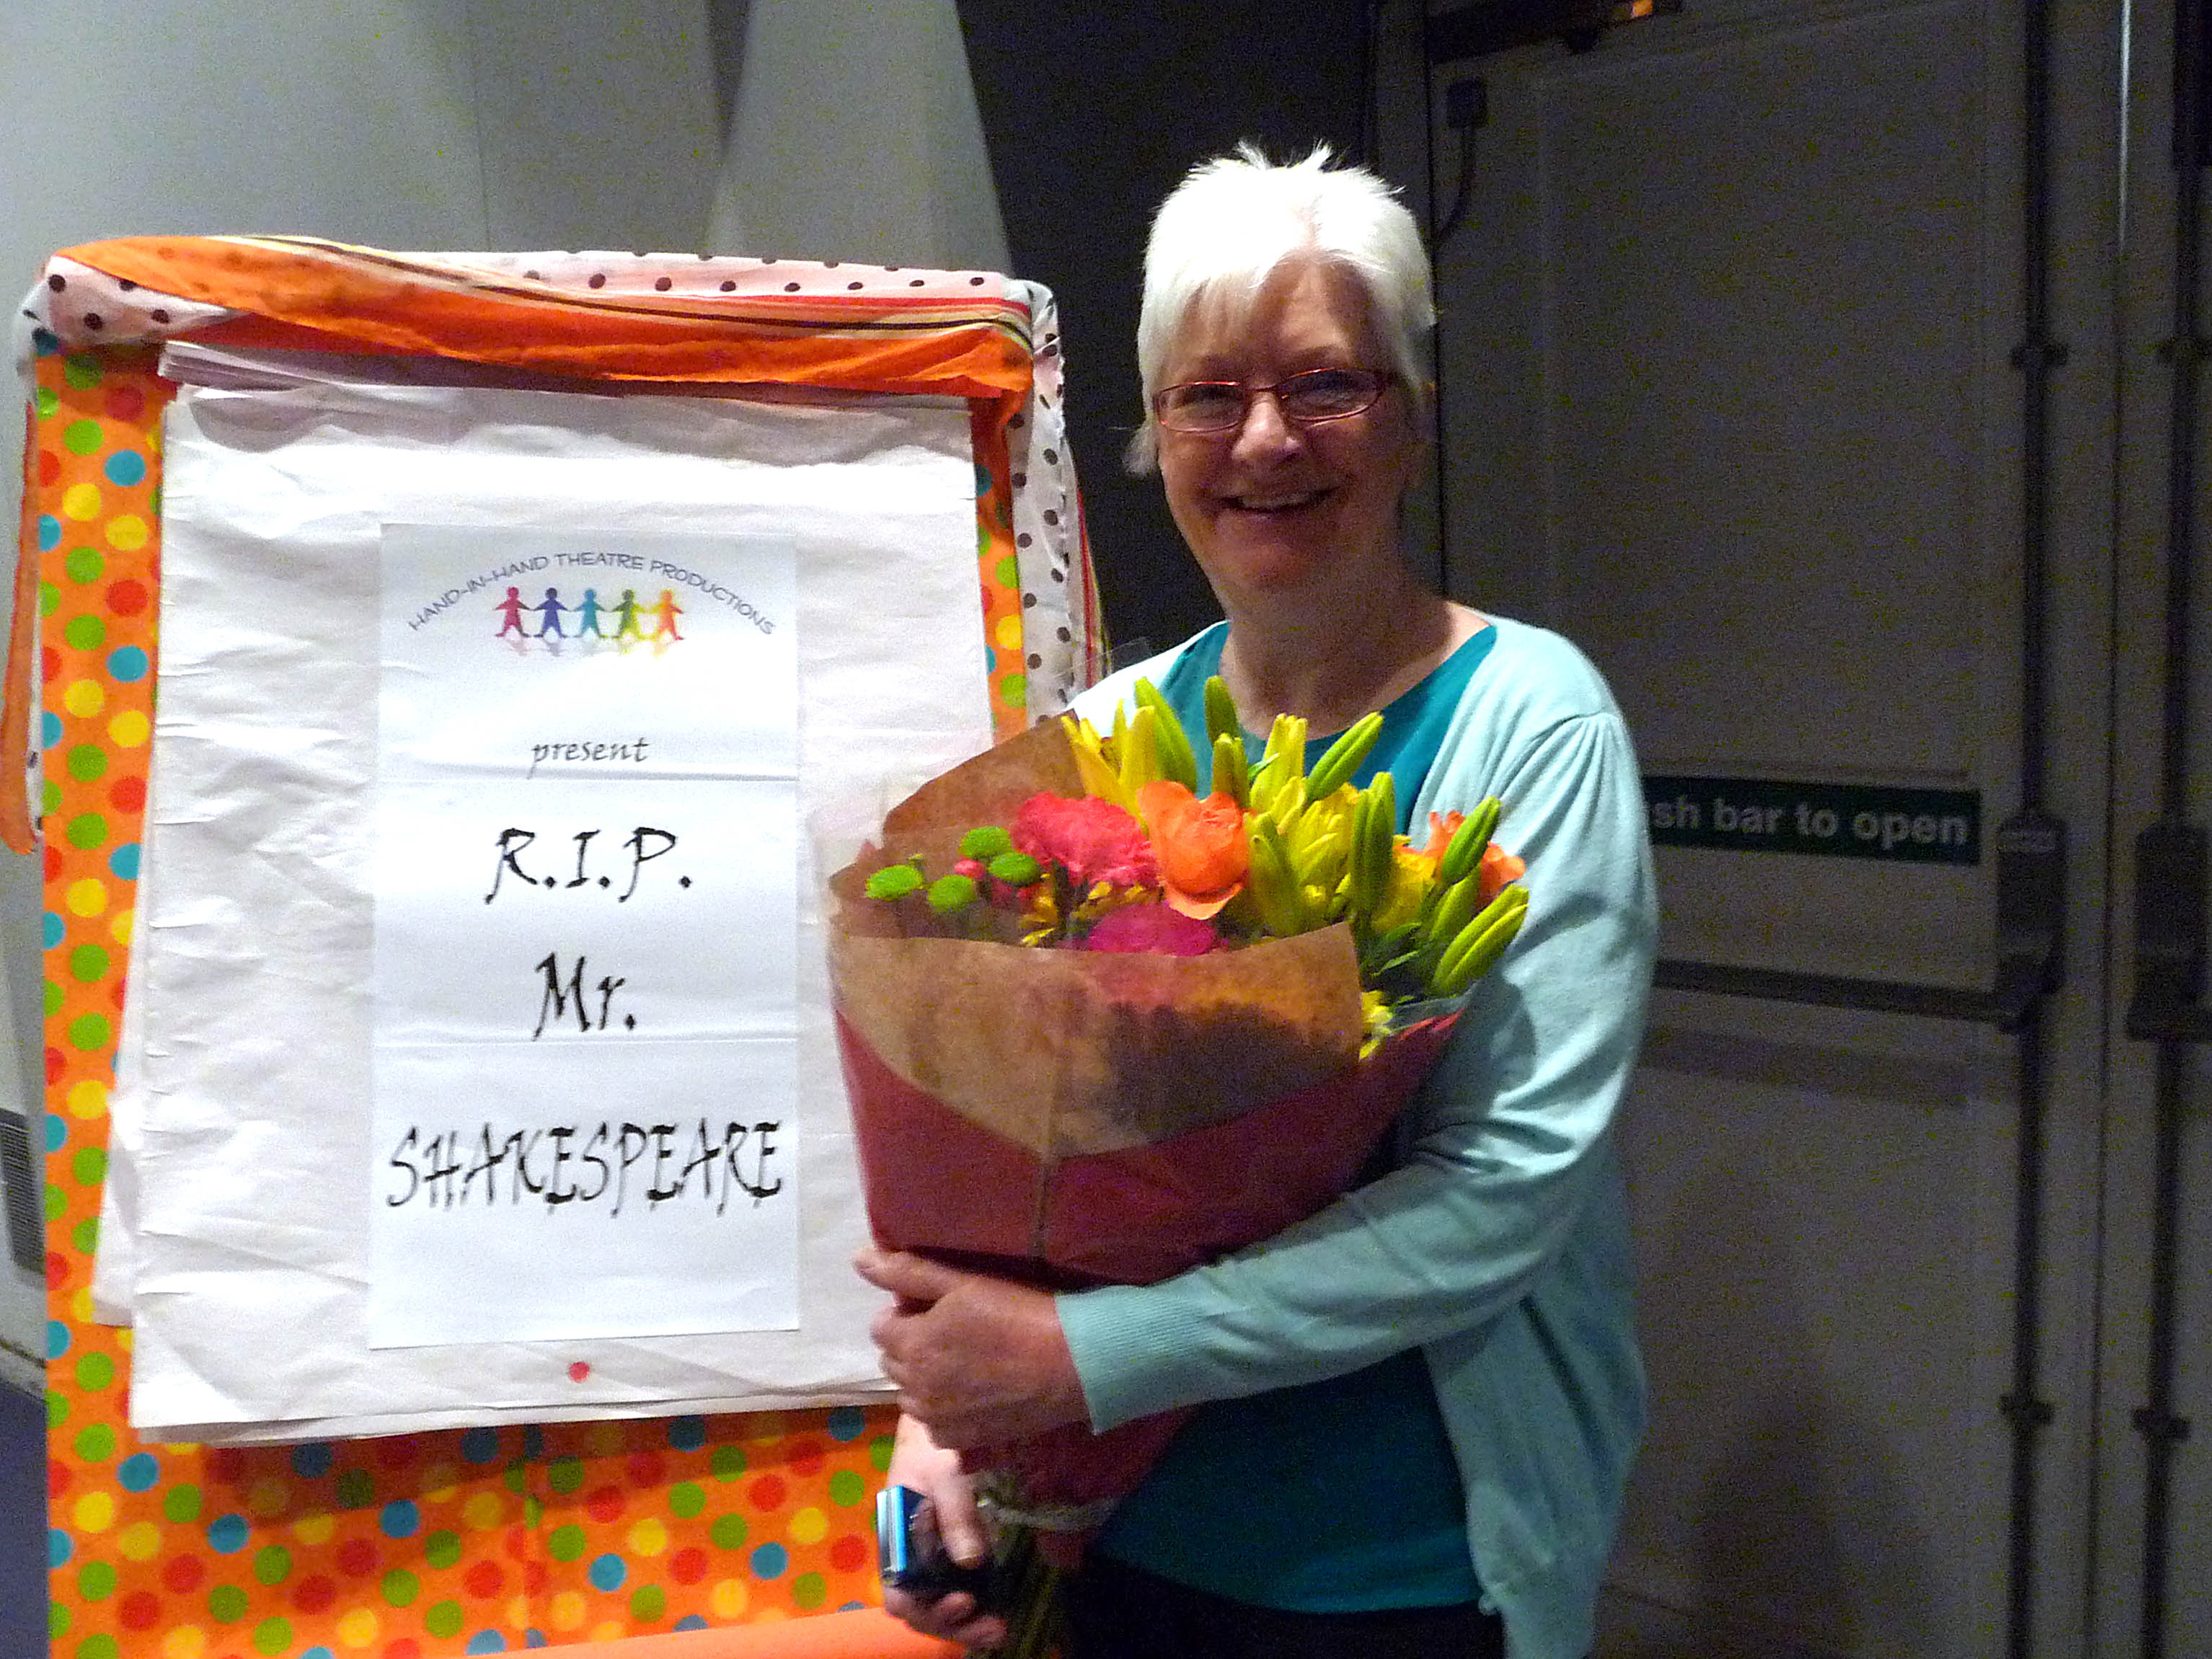 Brenda Muller with flowers presented by Hand in Hand theatre company